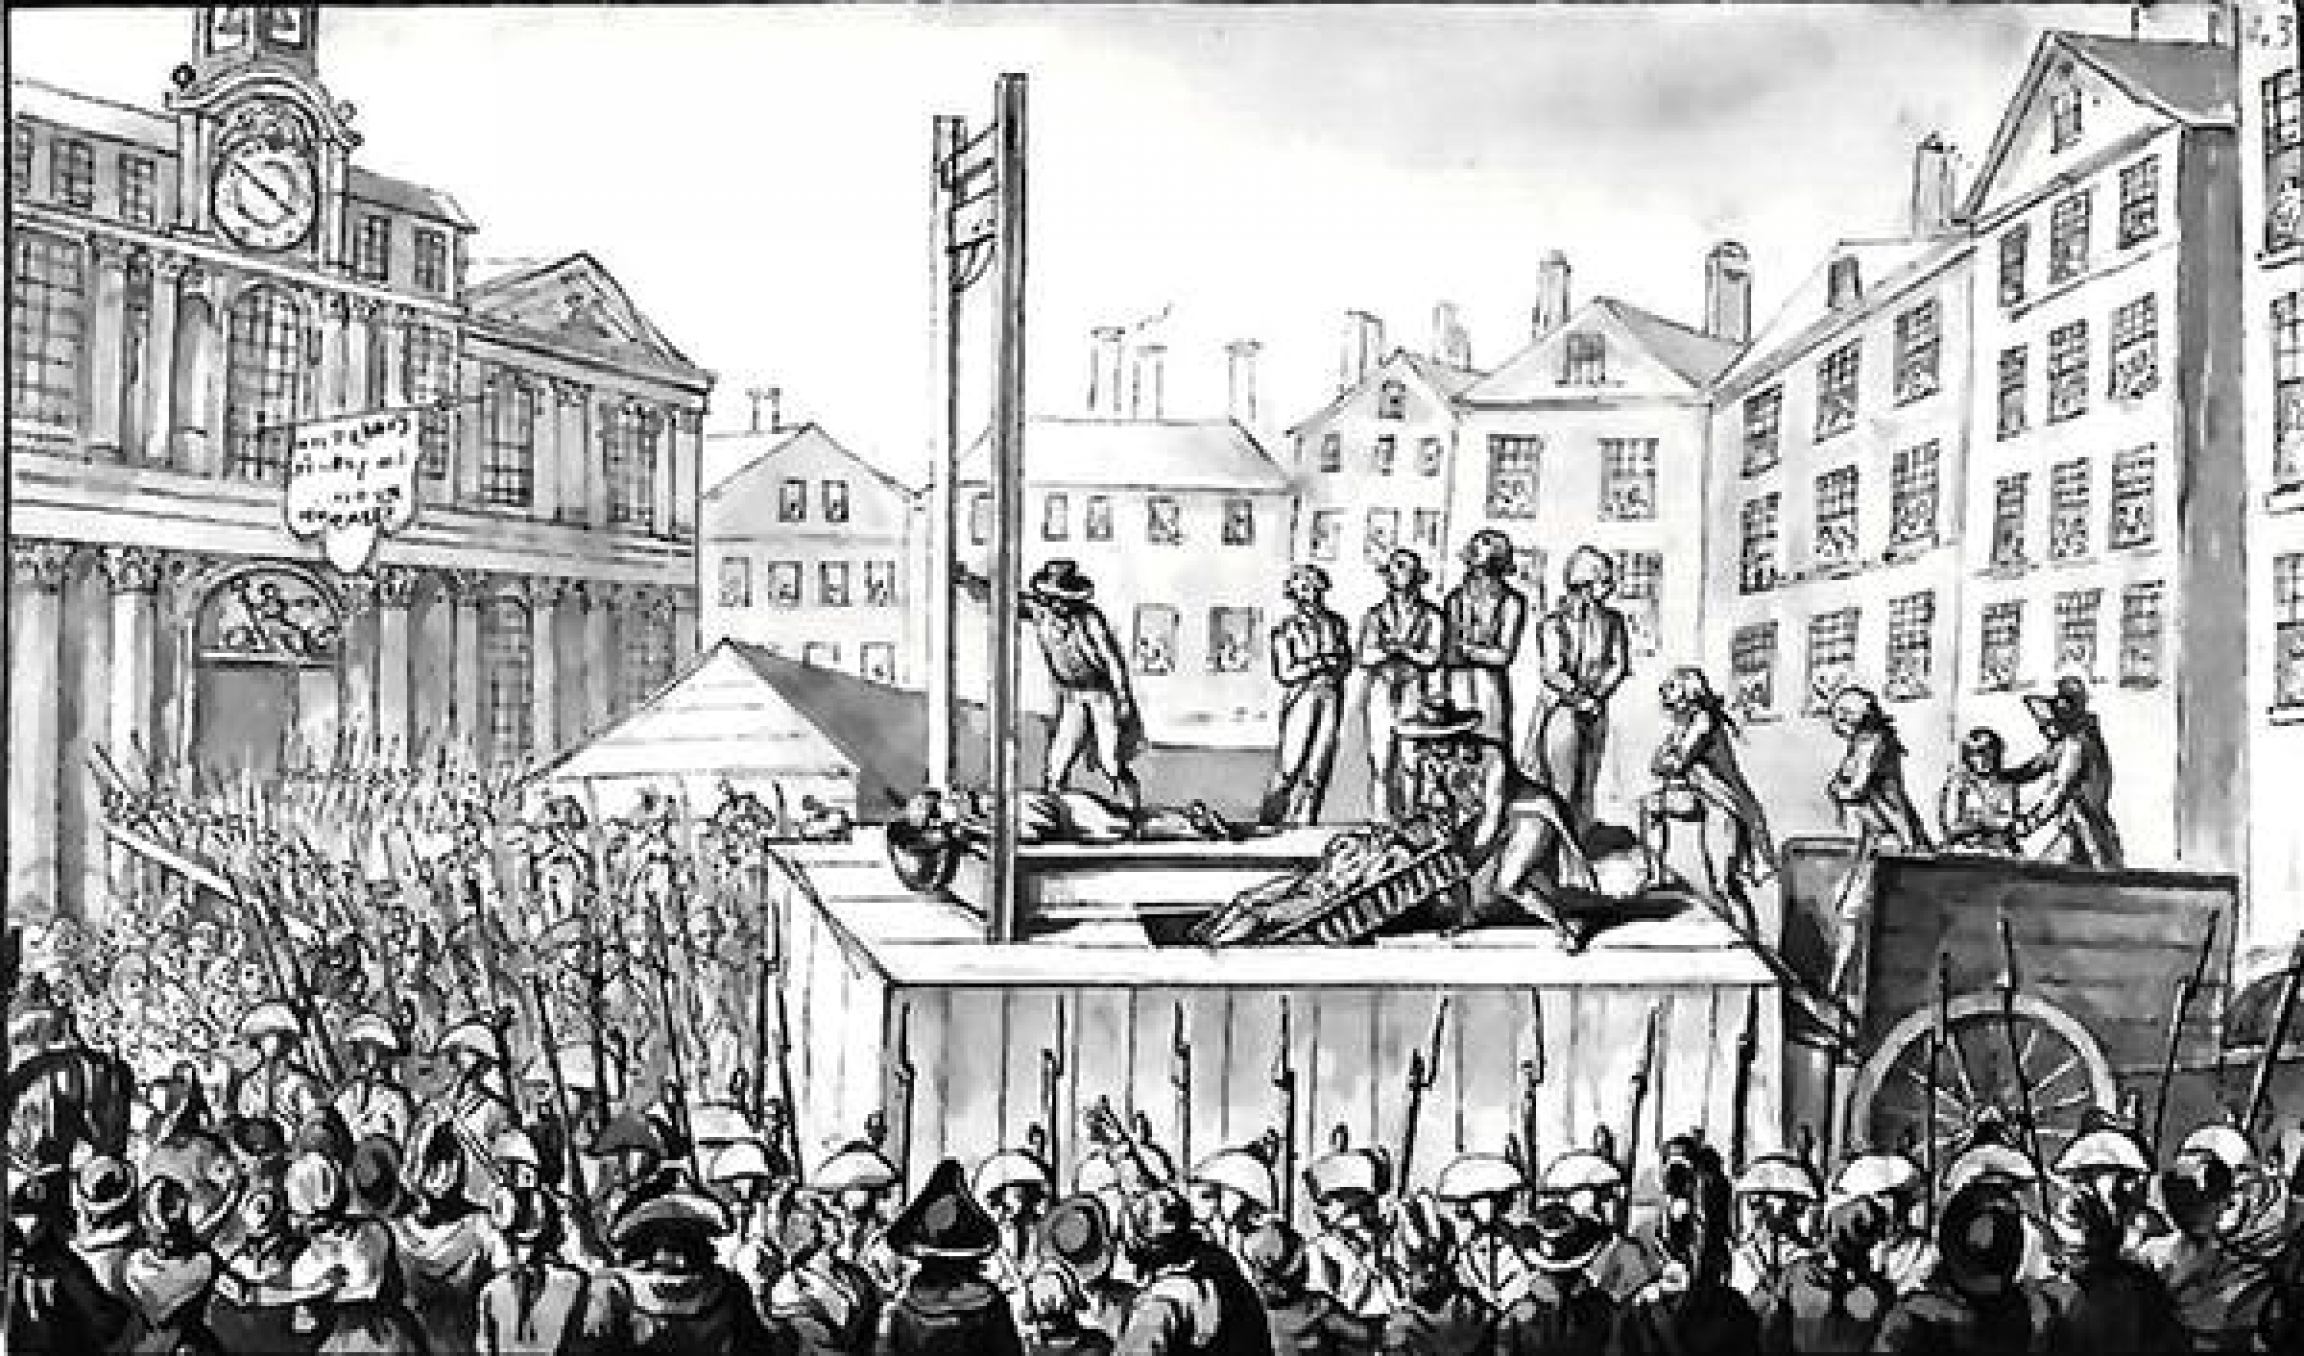 A black and white drawing depicting a guillotine execution in France